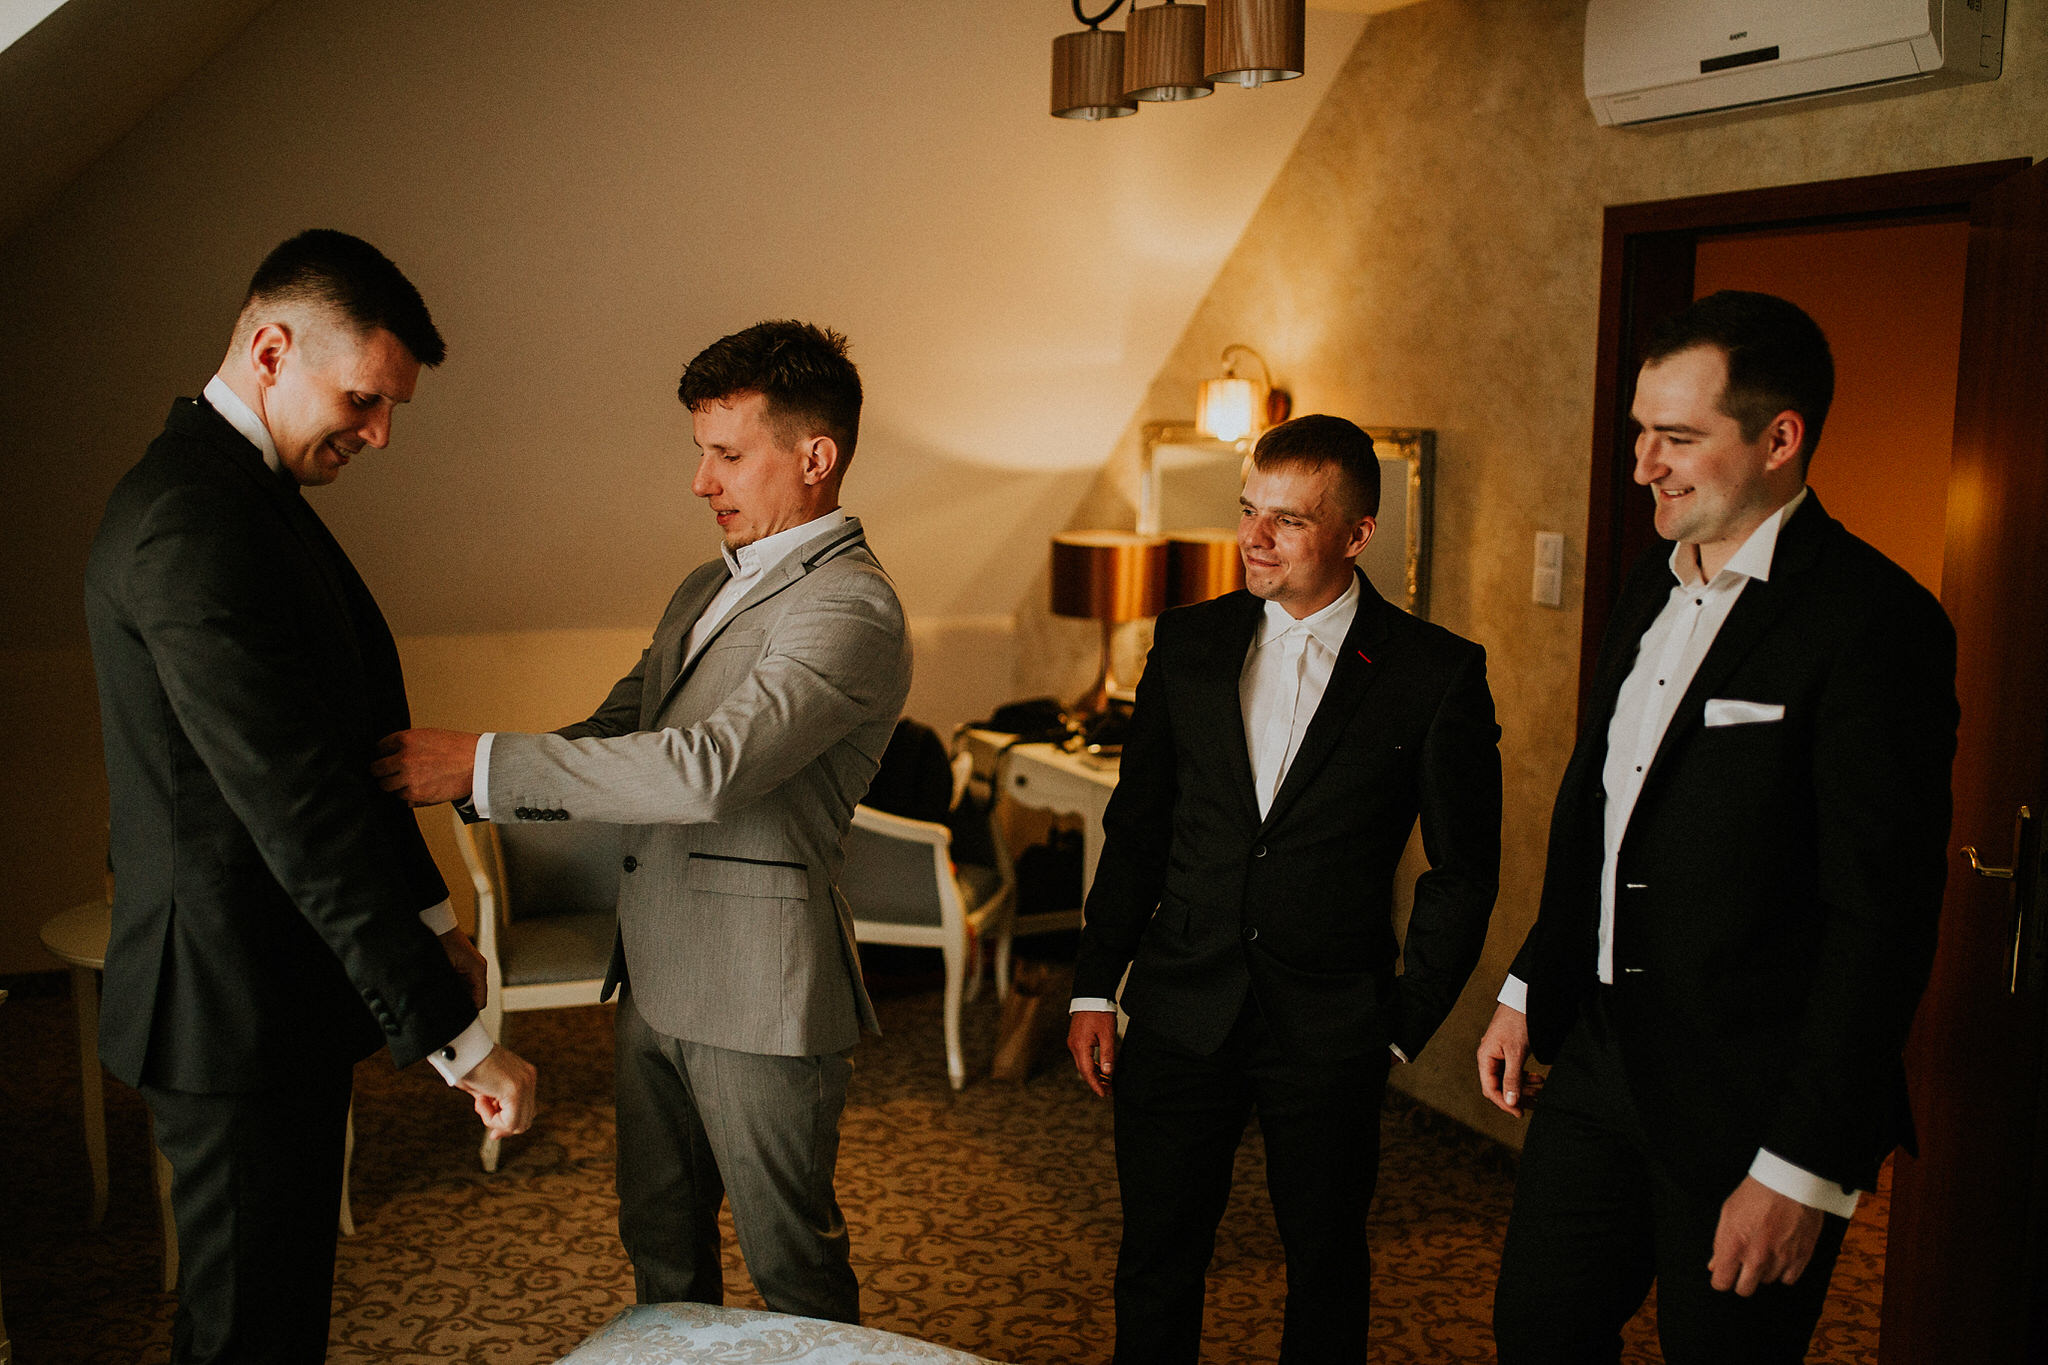 wedding at Hotel Trzy Róże